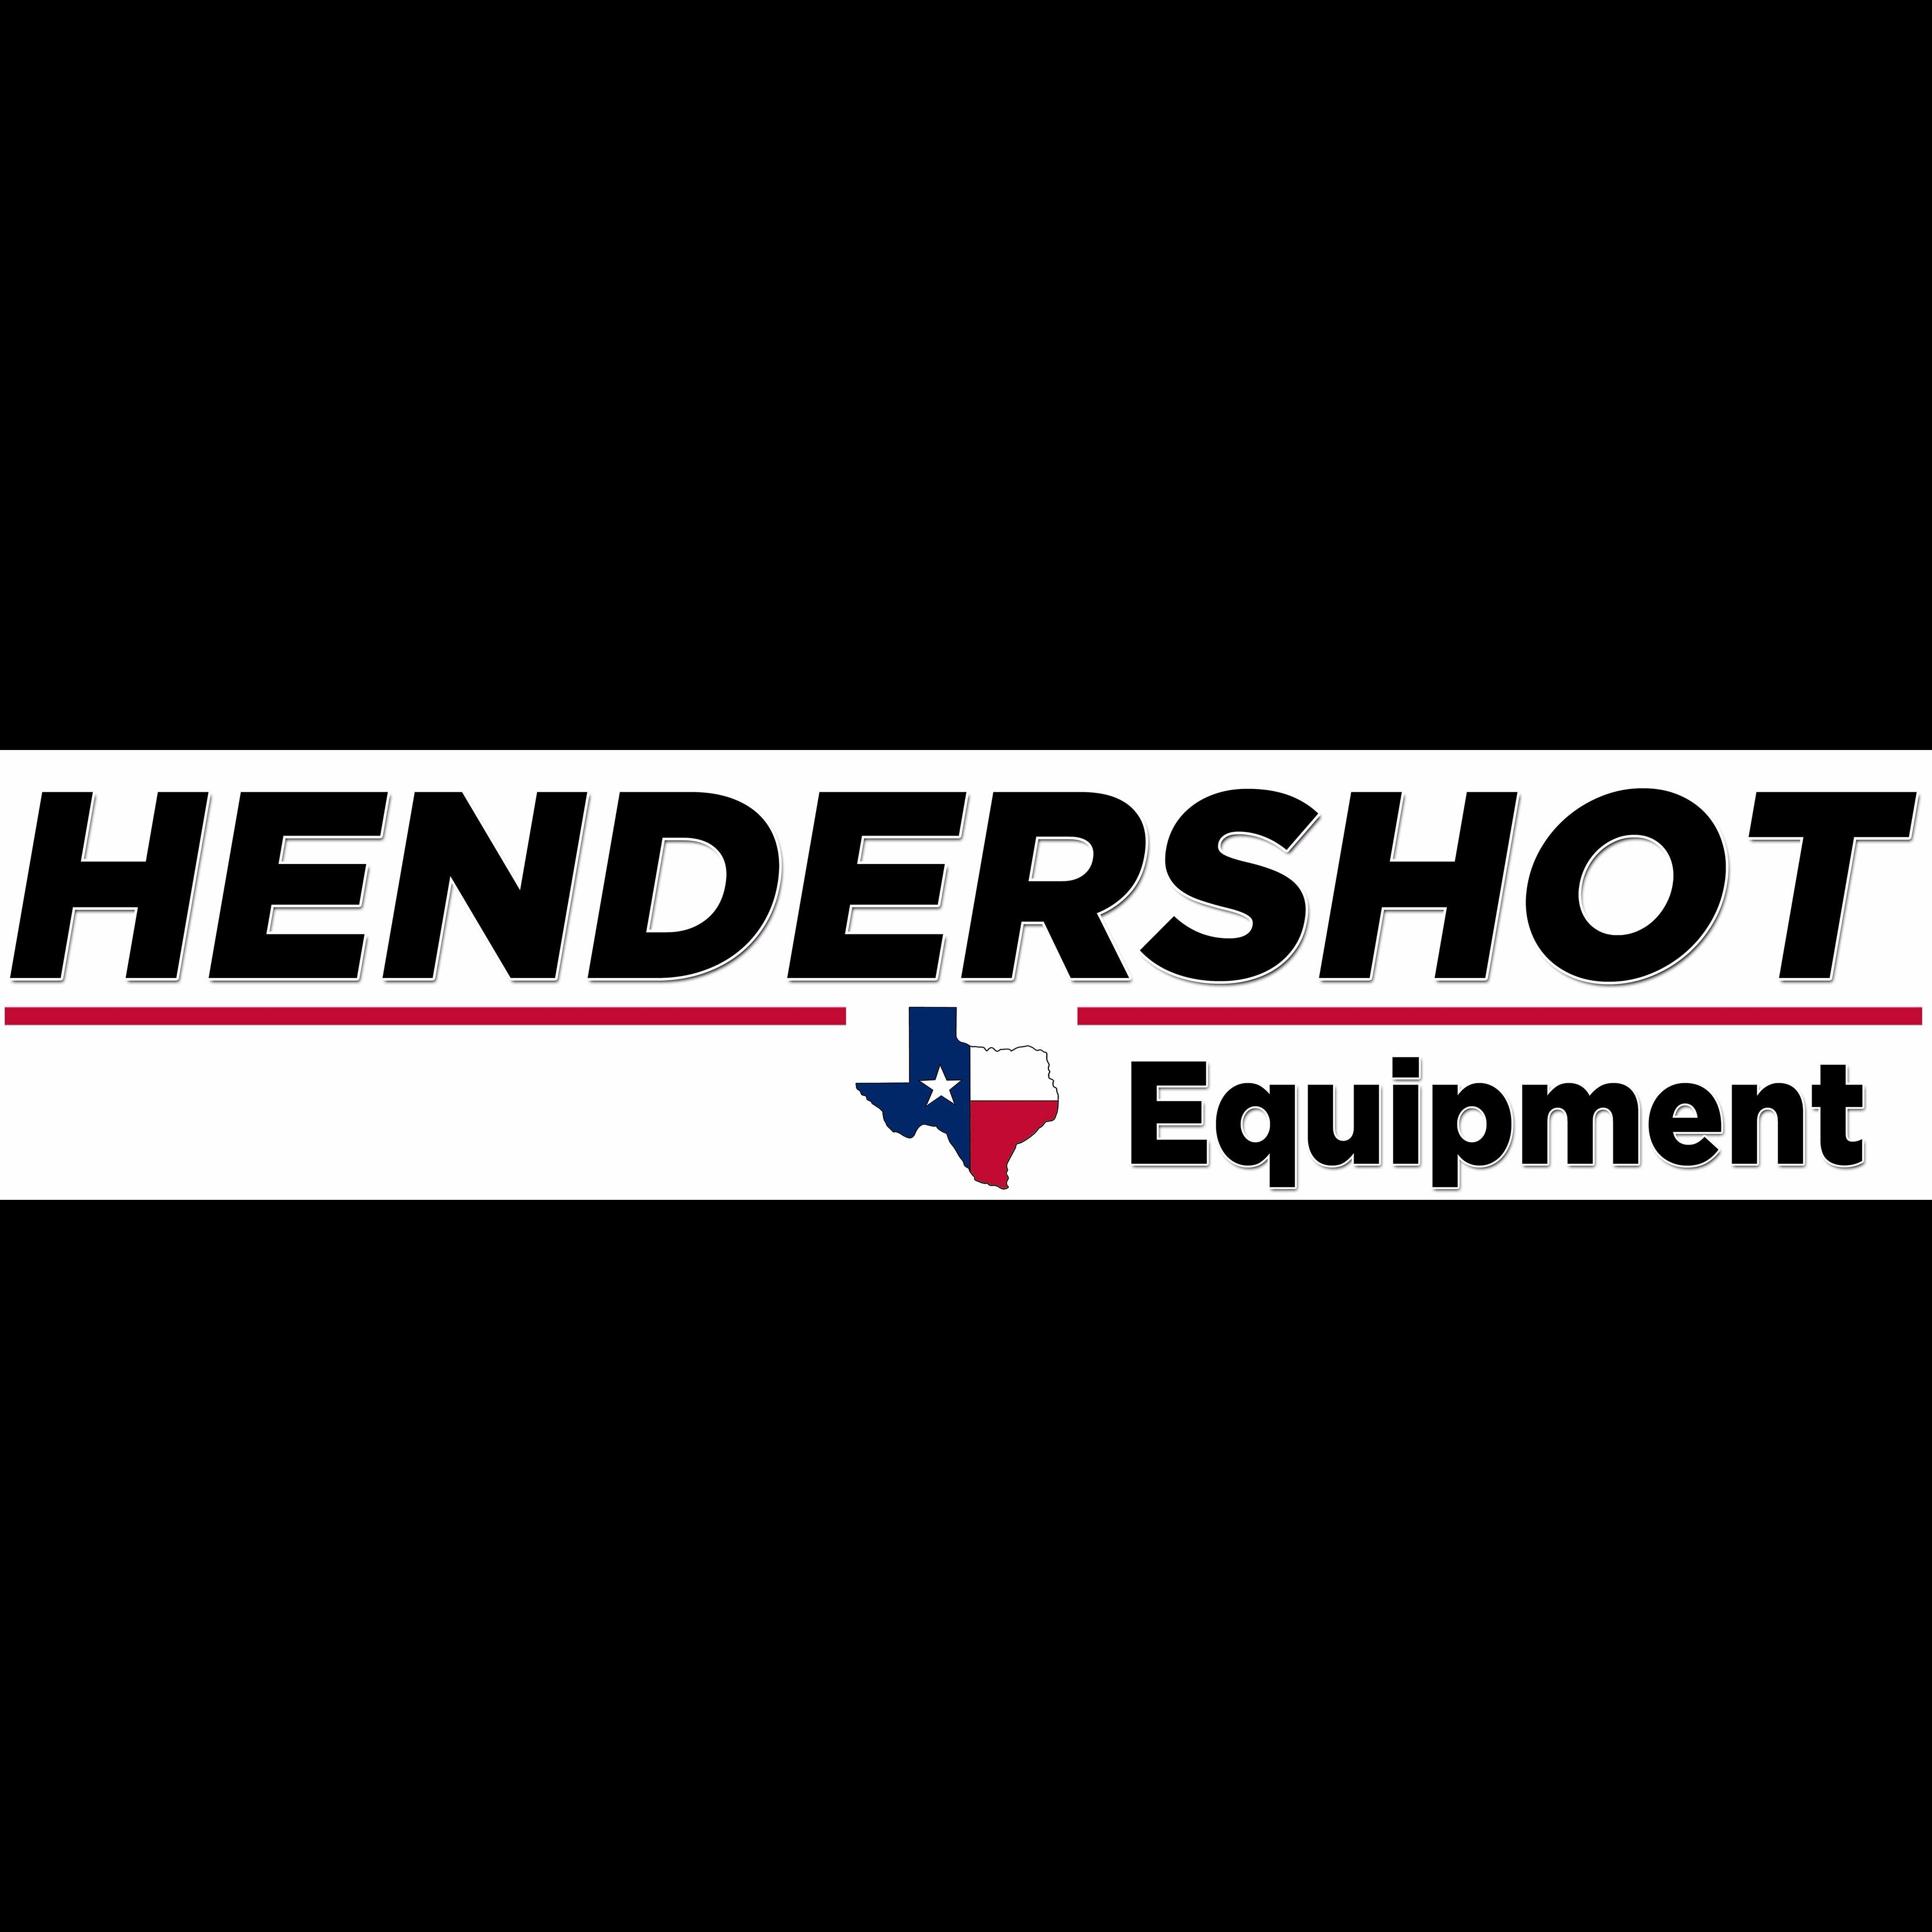 Hendershot Equipment